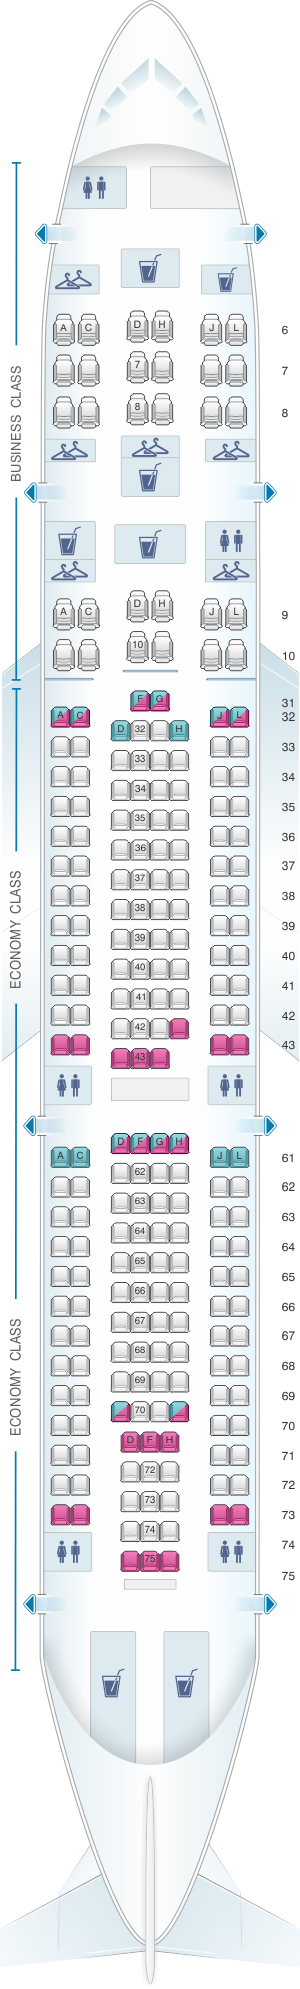 Seat Map China Eastern Airlines Airbus A330 200 234PAX ... China Eastern Airlines Seat Map on etihad airlines seat map, american airlines seat map, china airlines 777-300 economy, china eastern airlines business class, united airlines seat map, china southern airlines seat map, air china seat map, japan airlines seat map, china airlines 777-300er, iberia airlines seat map, copa airlines seat map, shanghai airlines seat map, china airlines seat selection, garuda airlines seat map, lan airlines seat map, south african airlines seat map, ethiopian airlines seat map, croatia airlines seat map, china eastern airlines route map, china eastern airlines seat assignment,